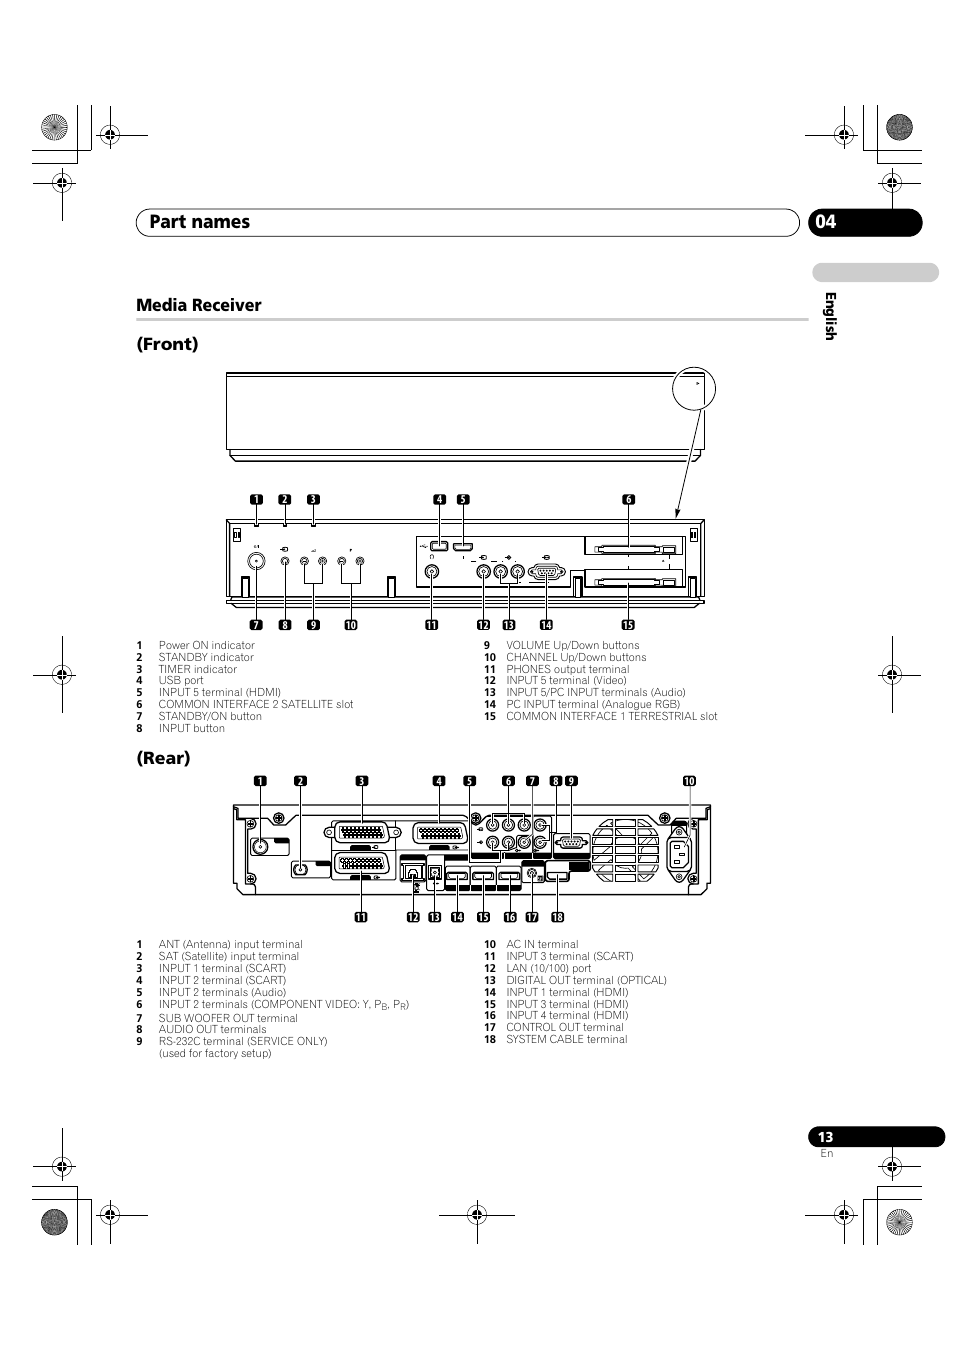 Media Receiver Part Names 04 Front Pioneer Krp Up Down Timer For A Power Antenna 600a User Manual Page 13 345